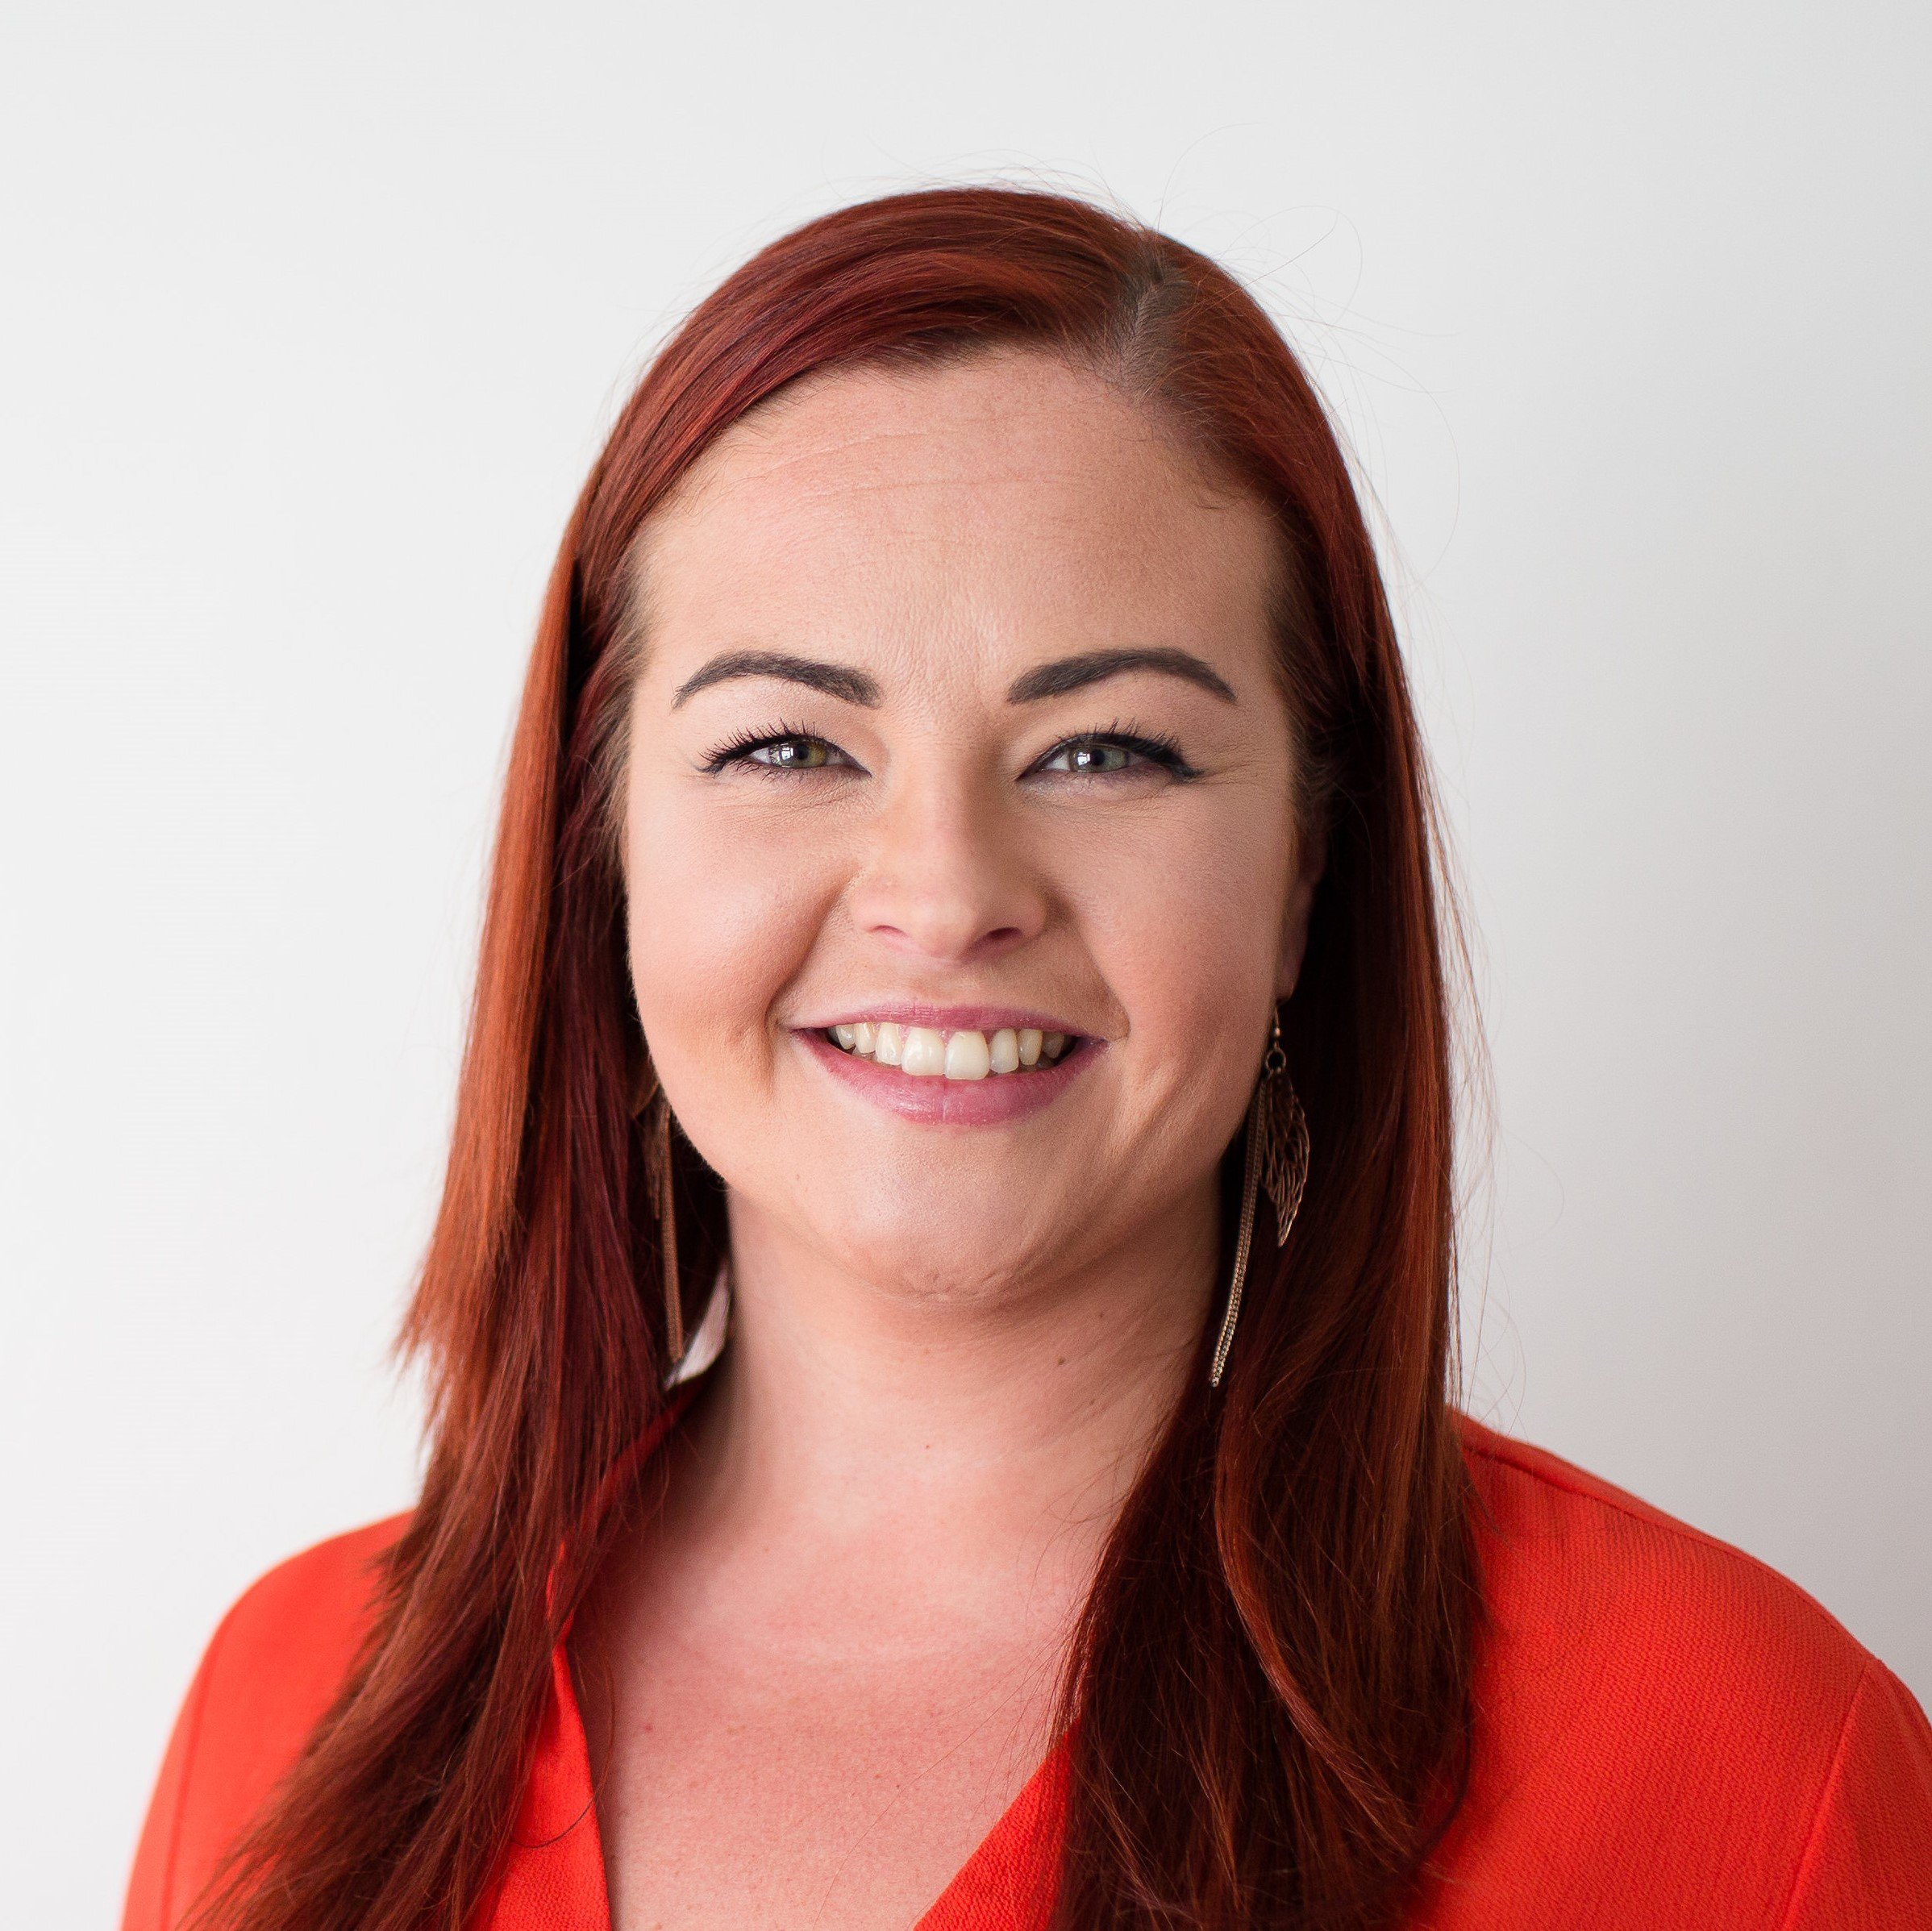 Paignton Chiropractor Ashleigh Ley profile photo